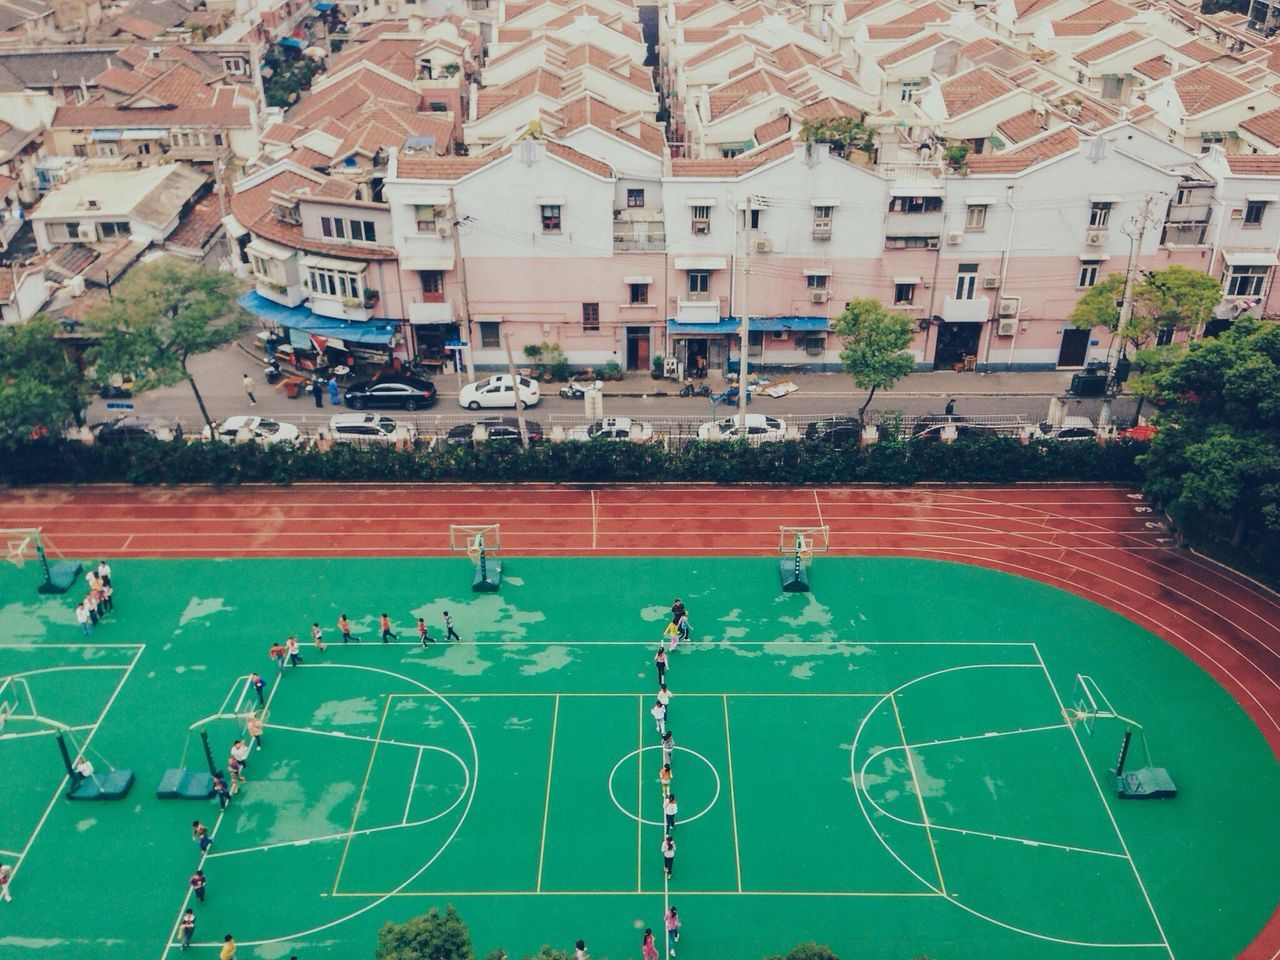 High angle view of school students running in basketball court